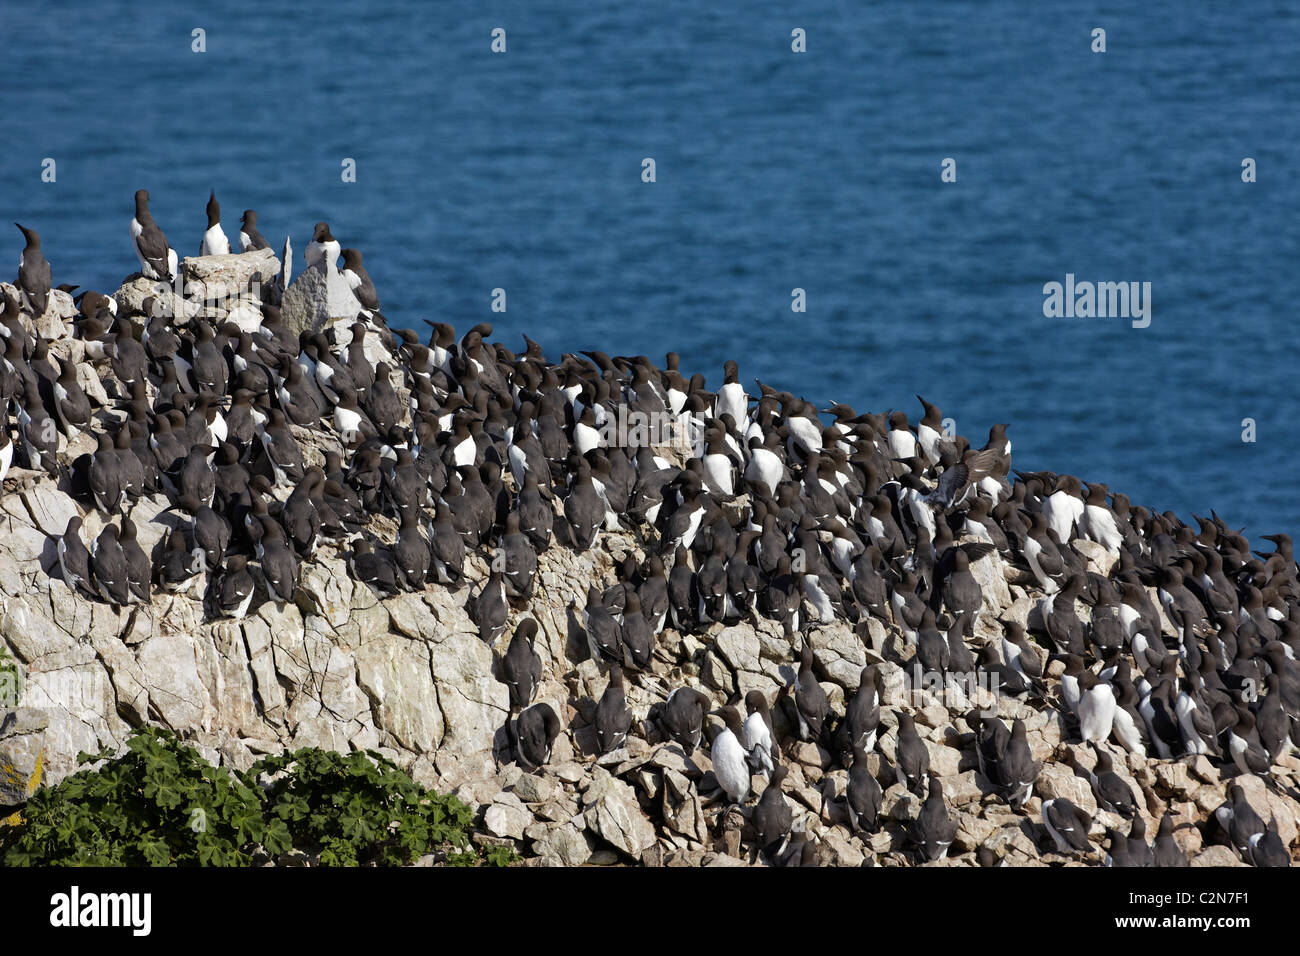 Guillemots (Uria aalge) on top of Stack Rock, Pembrokeshire Coast, Wales, UK - Stock Image